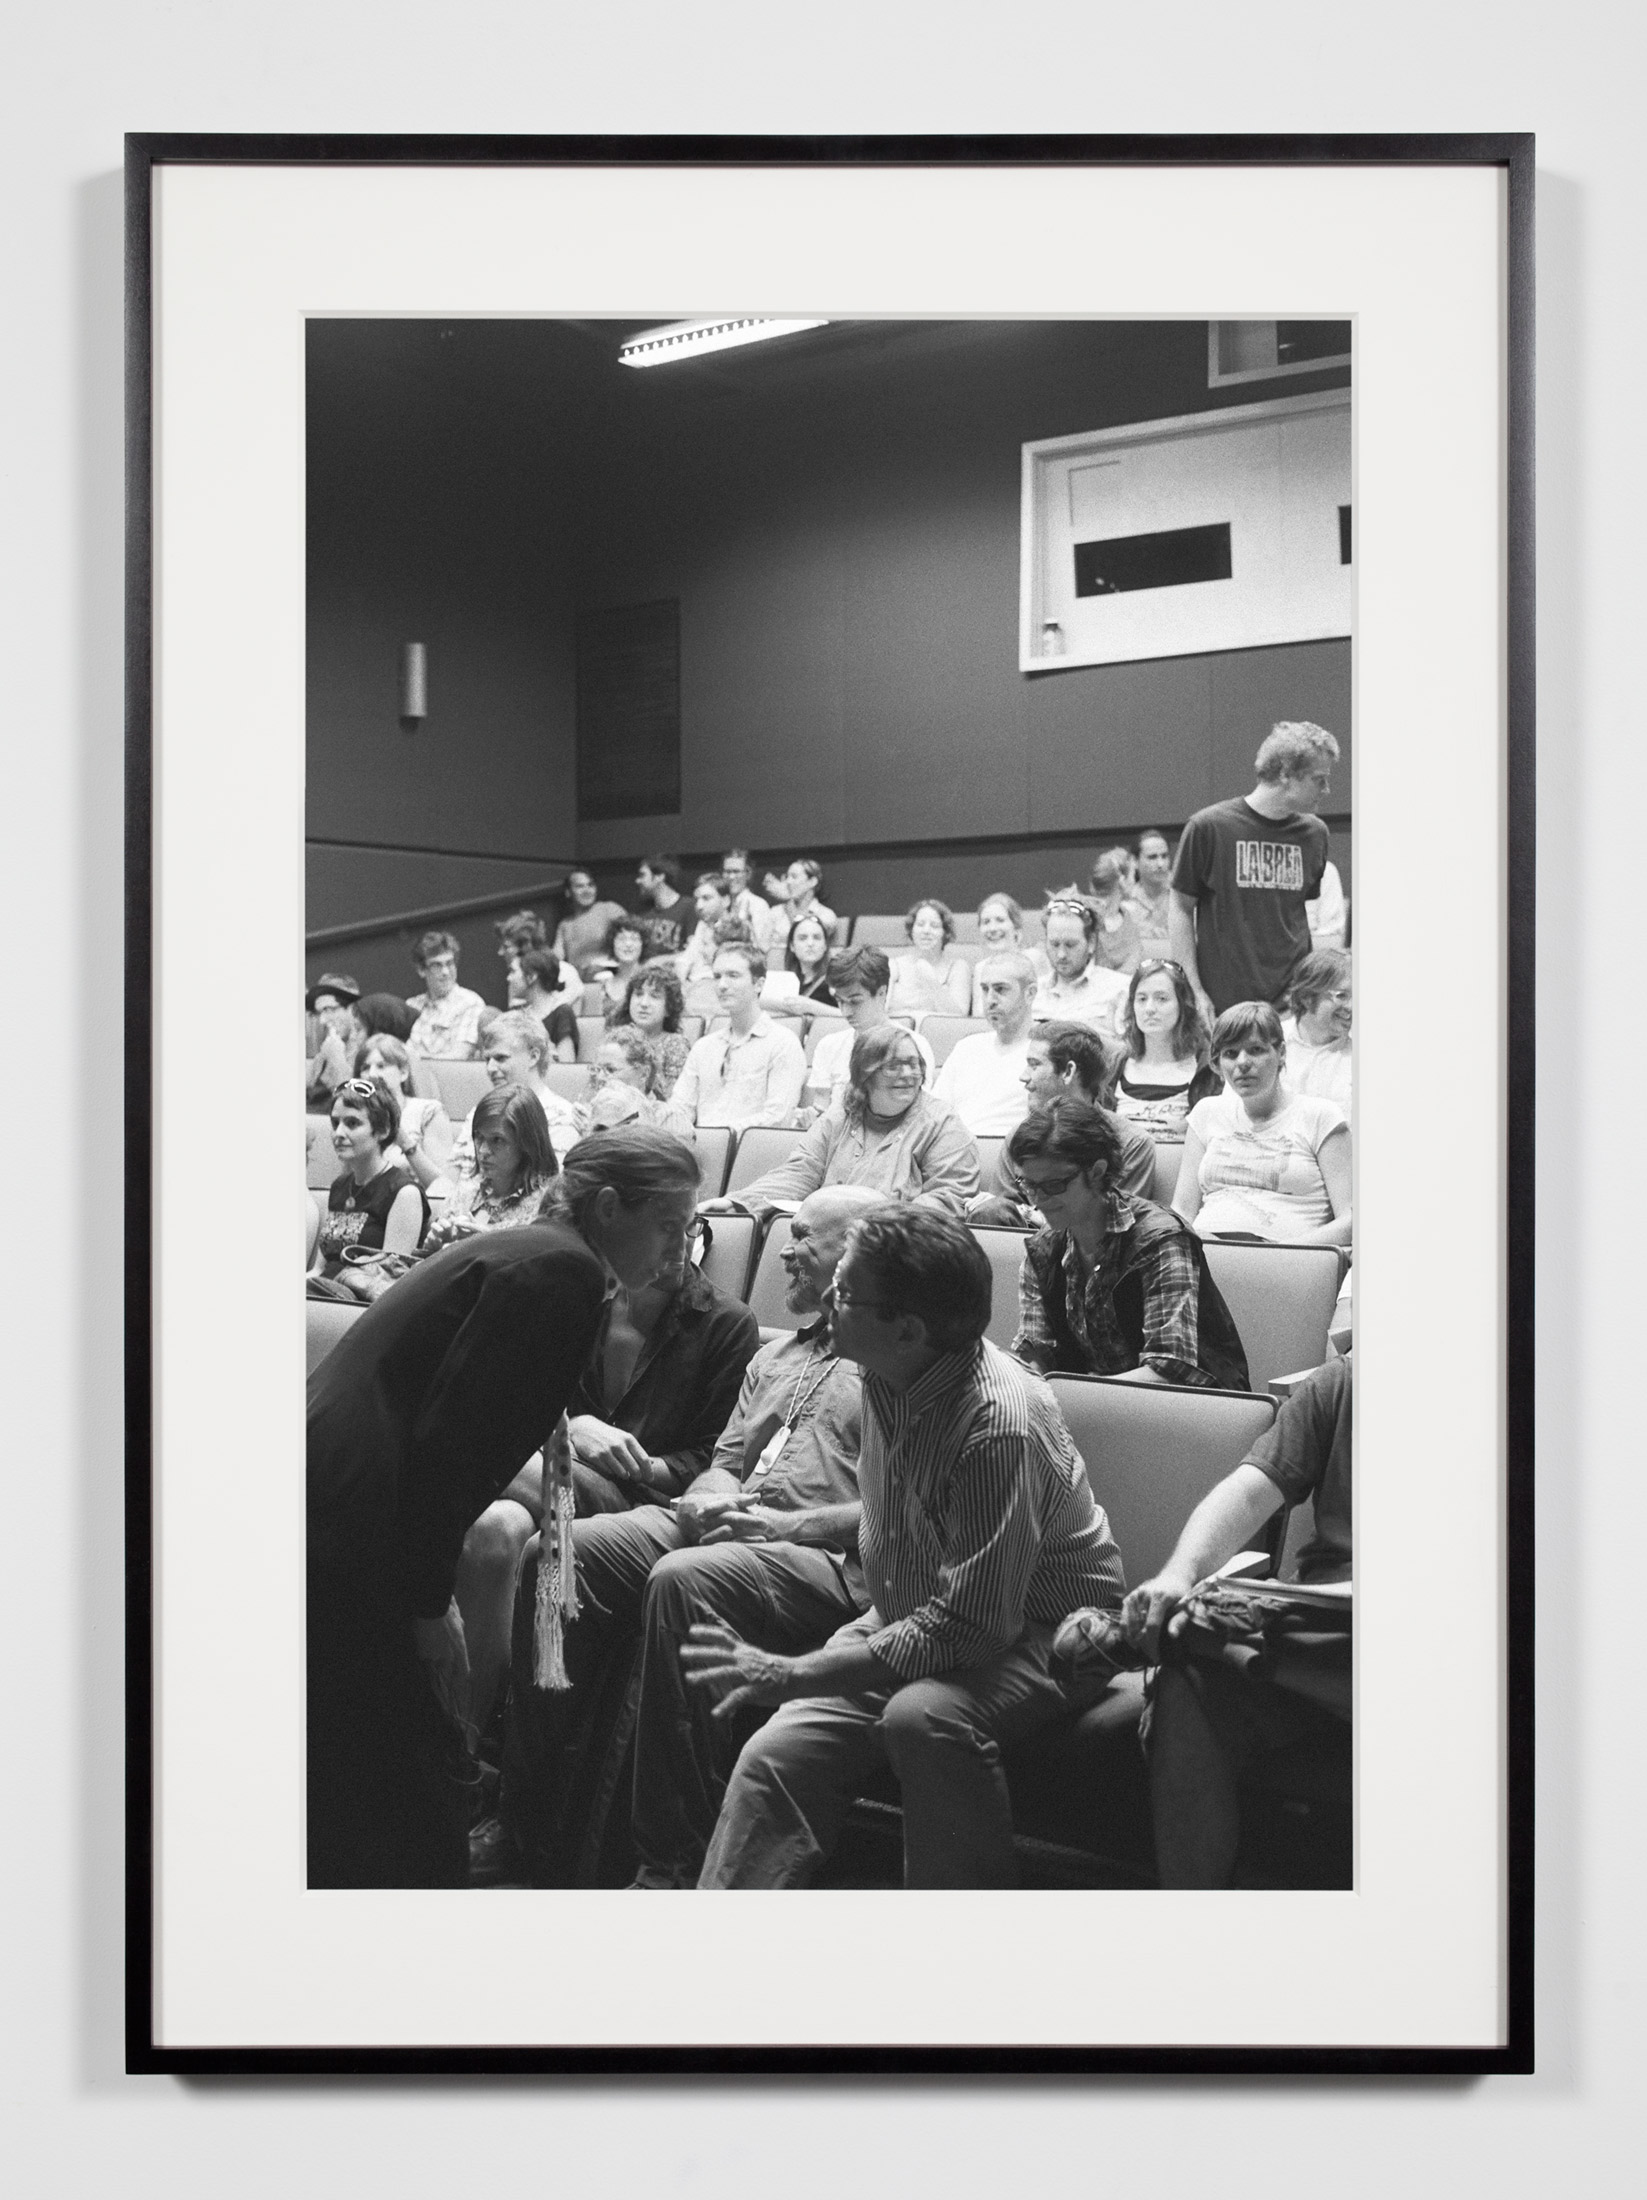 College Lecture Hall, Annandale-on-Hudson, New York, July 11, 2009    2011   Epson Ultrachrome K3 archival ink jet print on Hahnemühle Photo Rag paper  36 3/8 x 26 3/8 inches   Industrial Portraits, 2008–